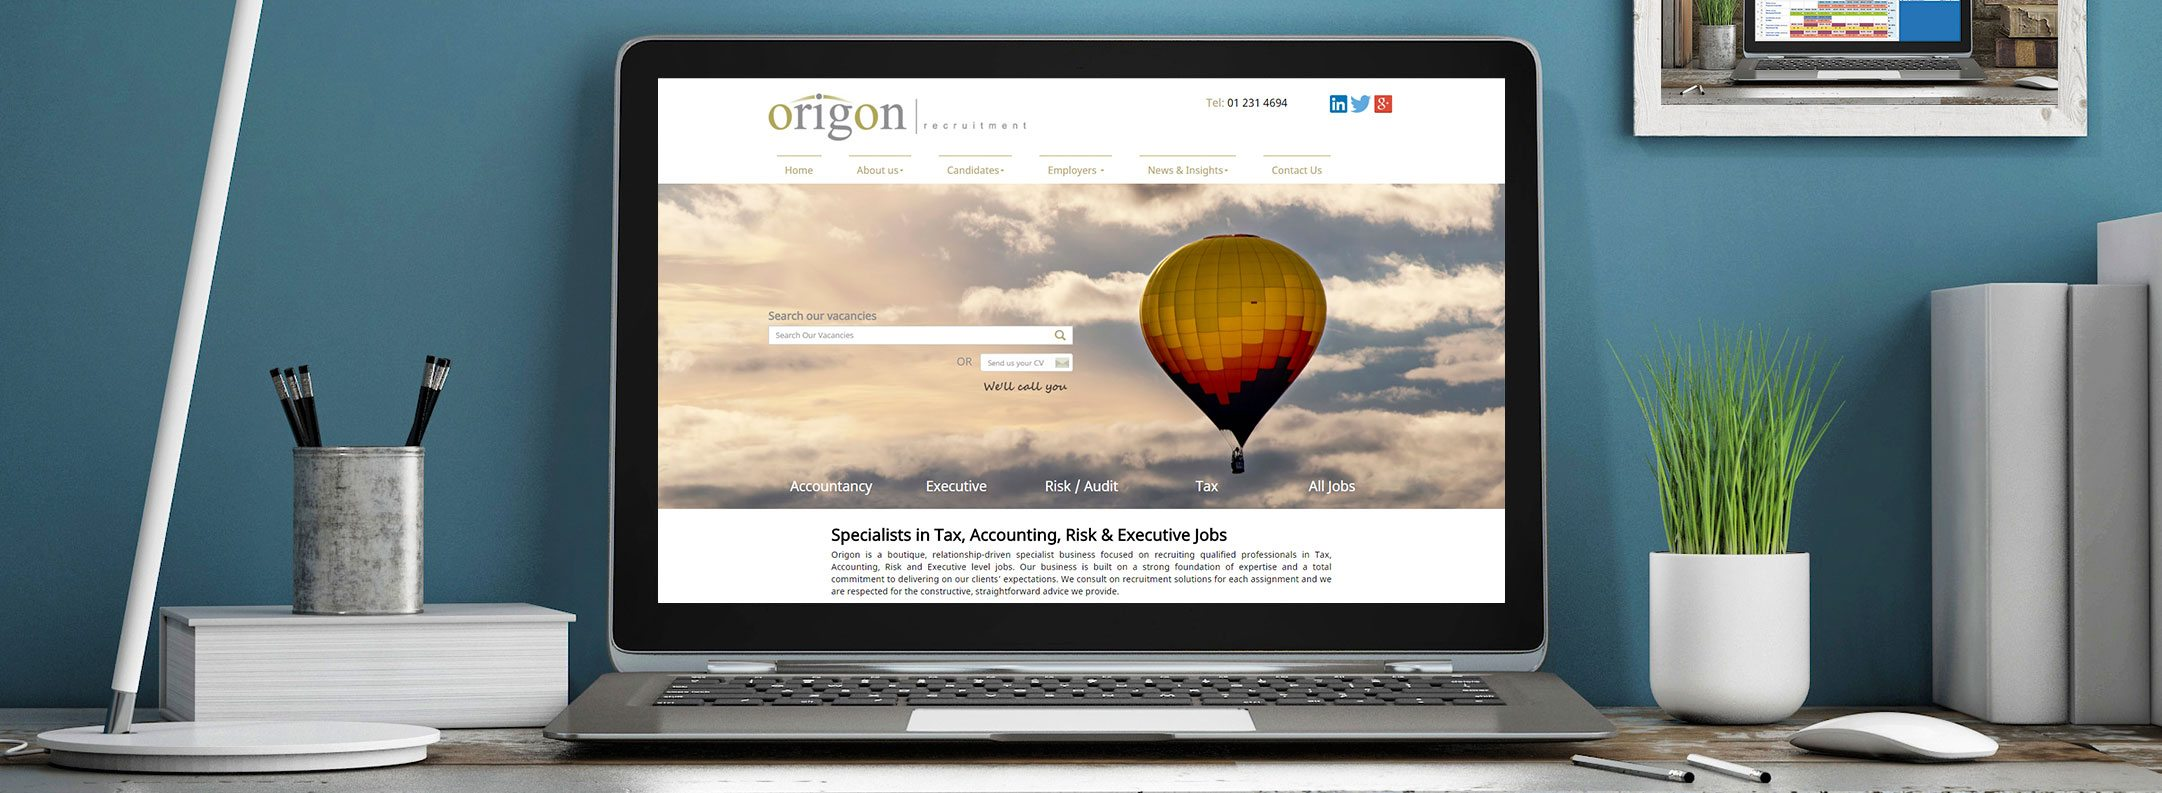 Website-banner-origon